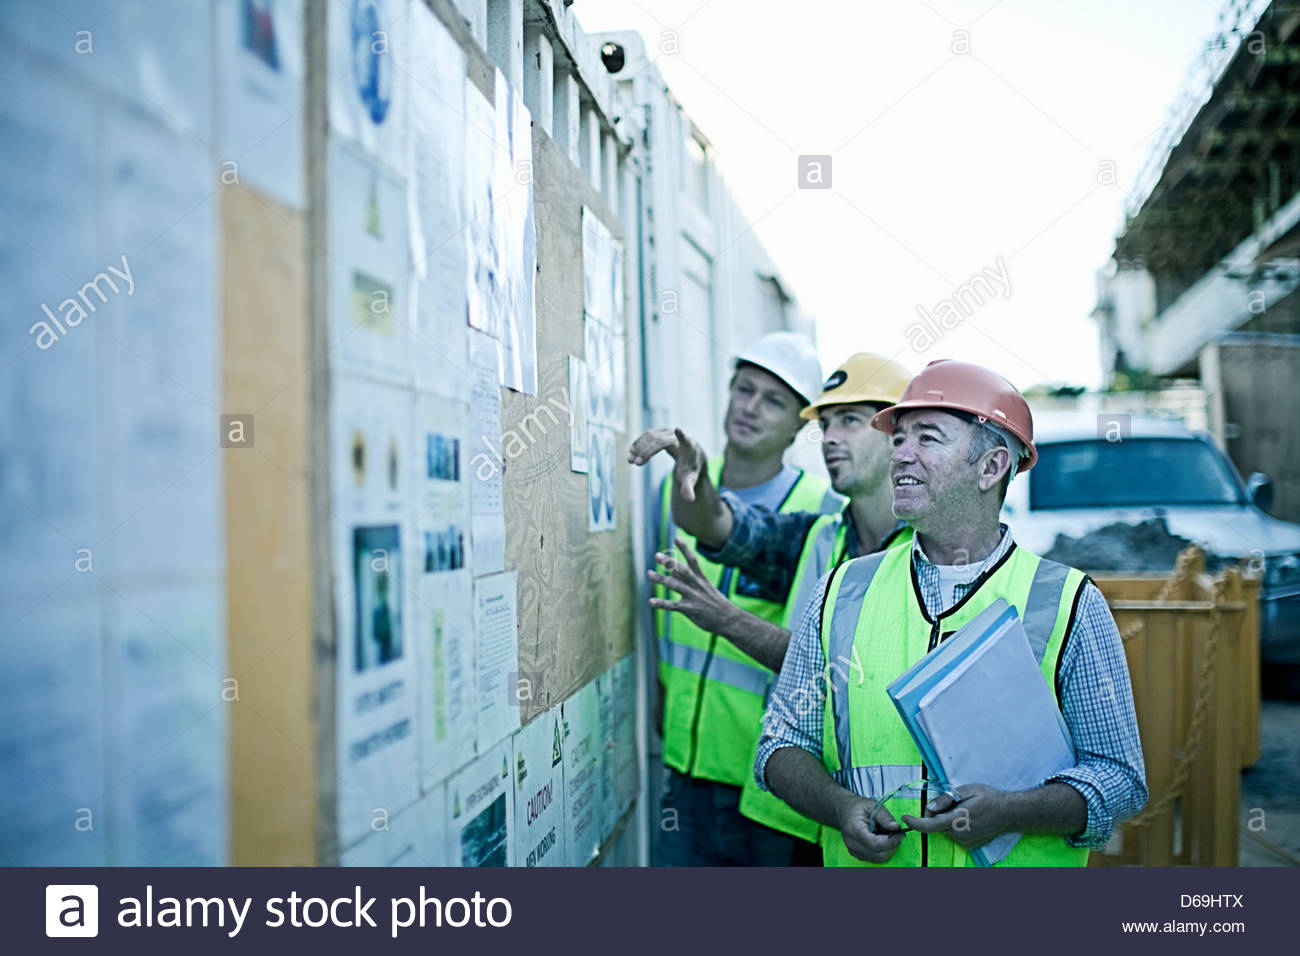 Construction worker reading boards - Stock Image